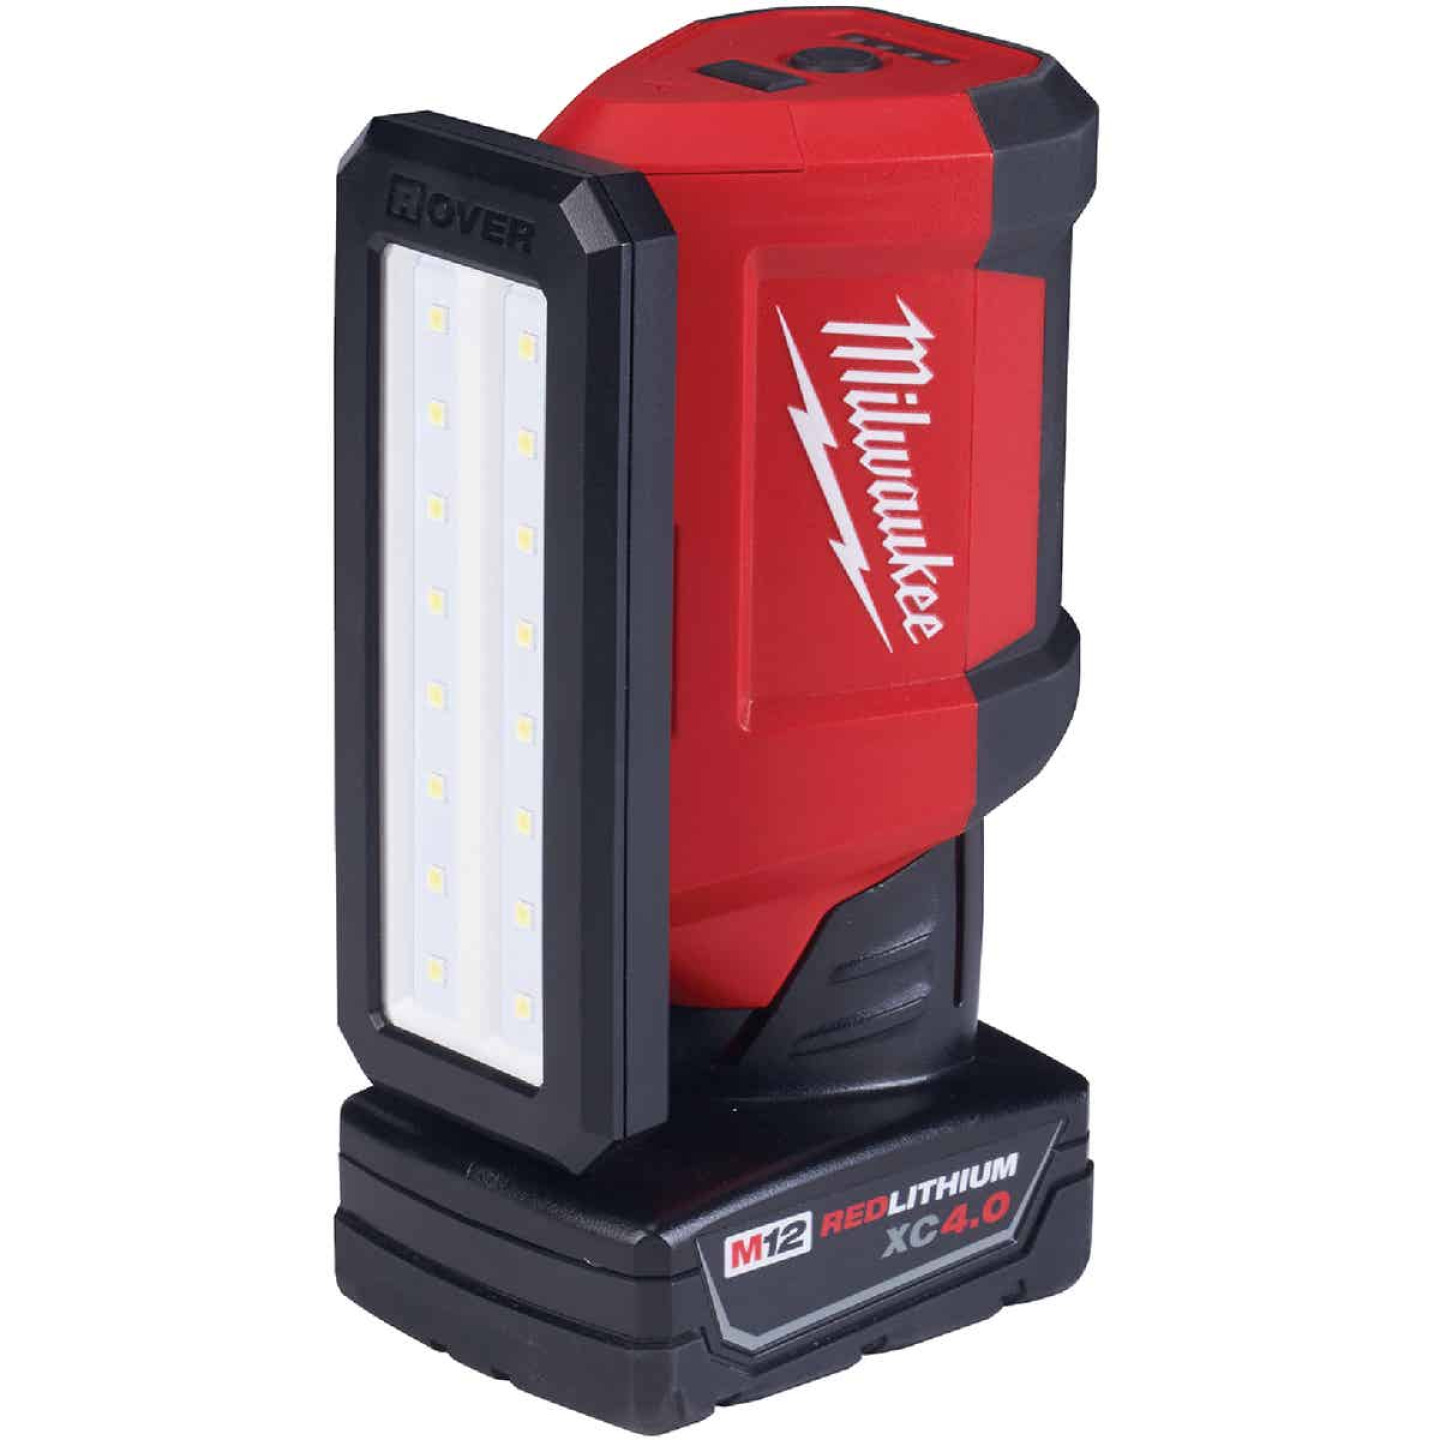 Milwaukee M12 ROVER 12 Volt Lithium-Ion LED Service & Repair Flood Cordless Work Light w/USB Charging (Bare Tool) Image 2